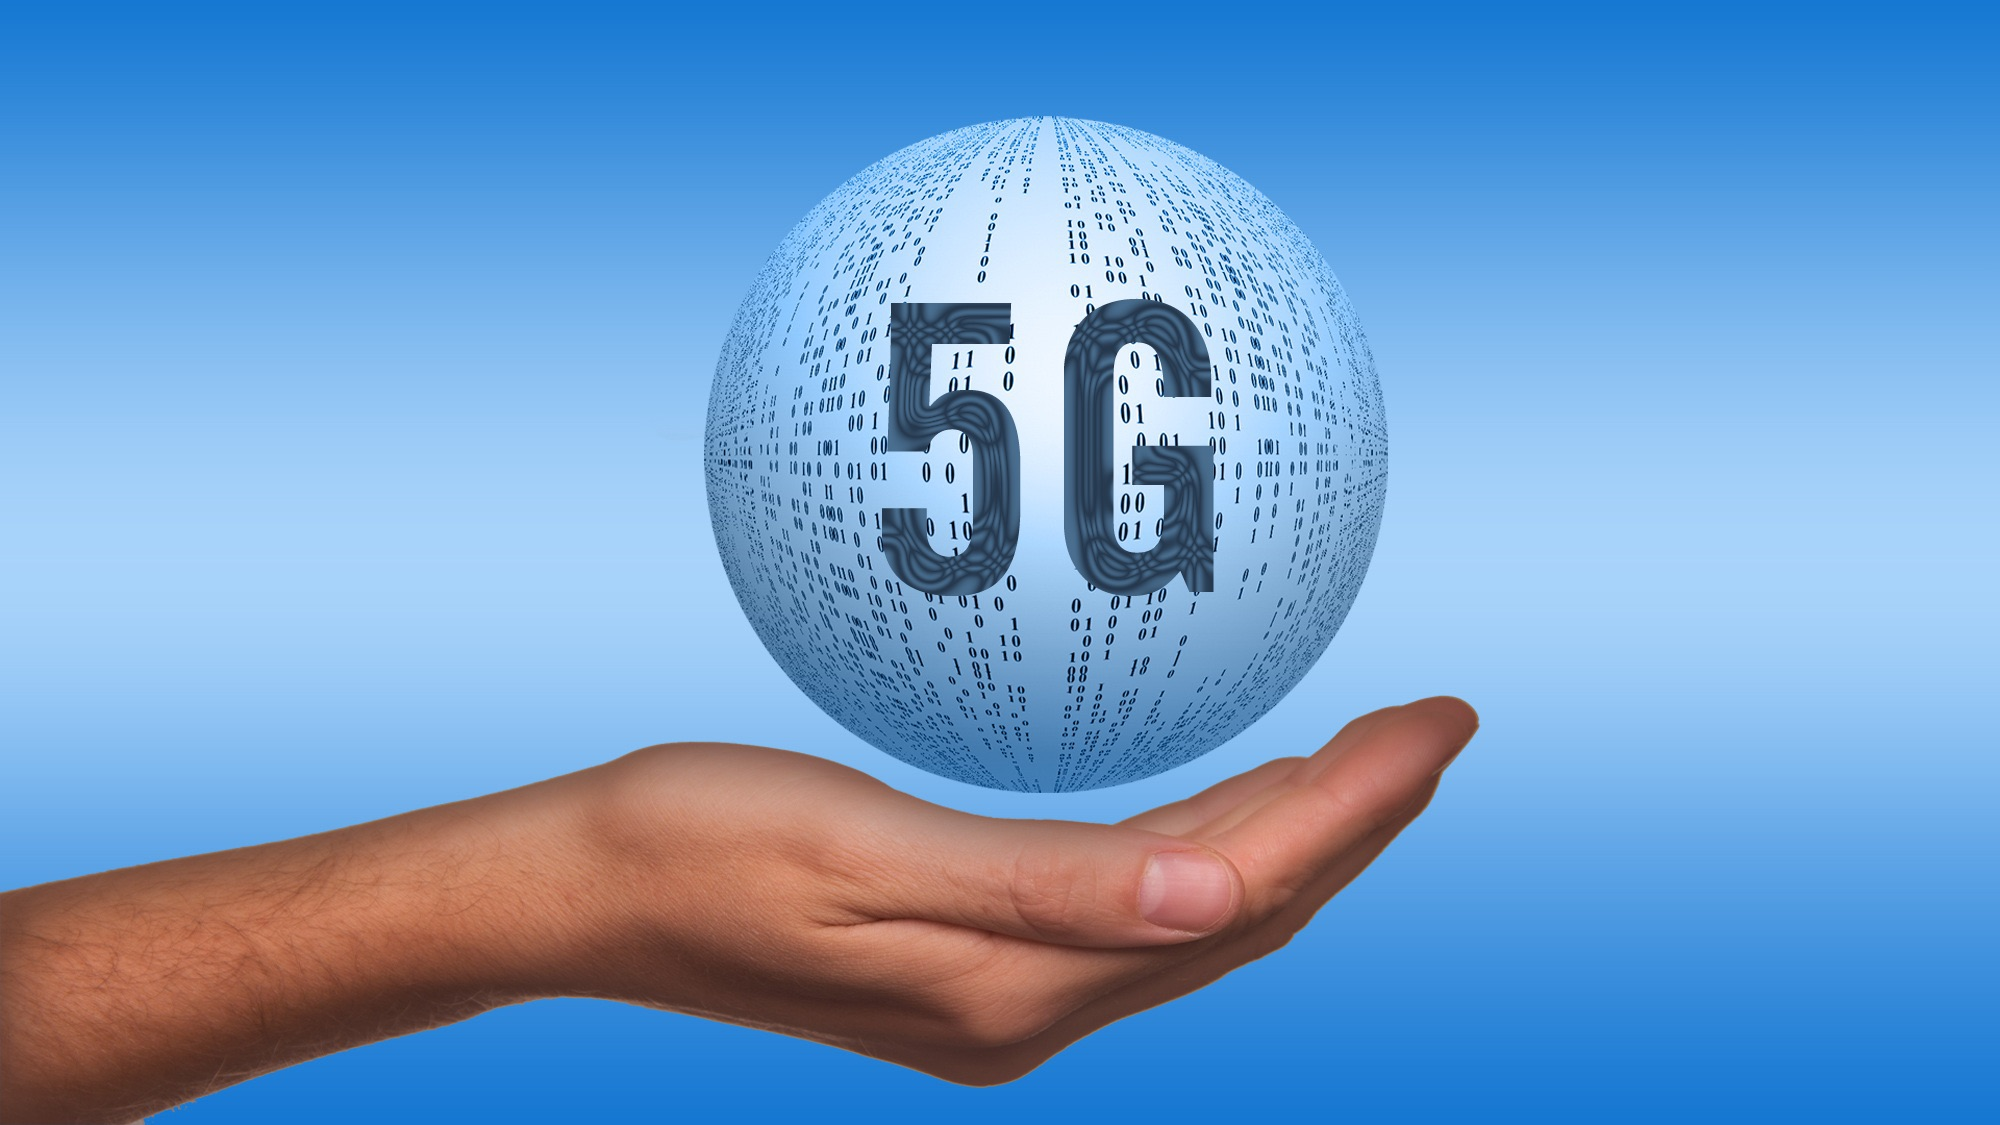 5G a look into the future